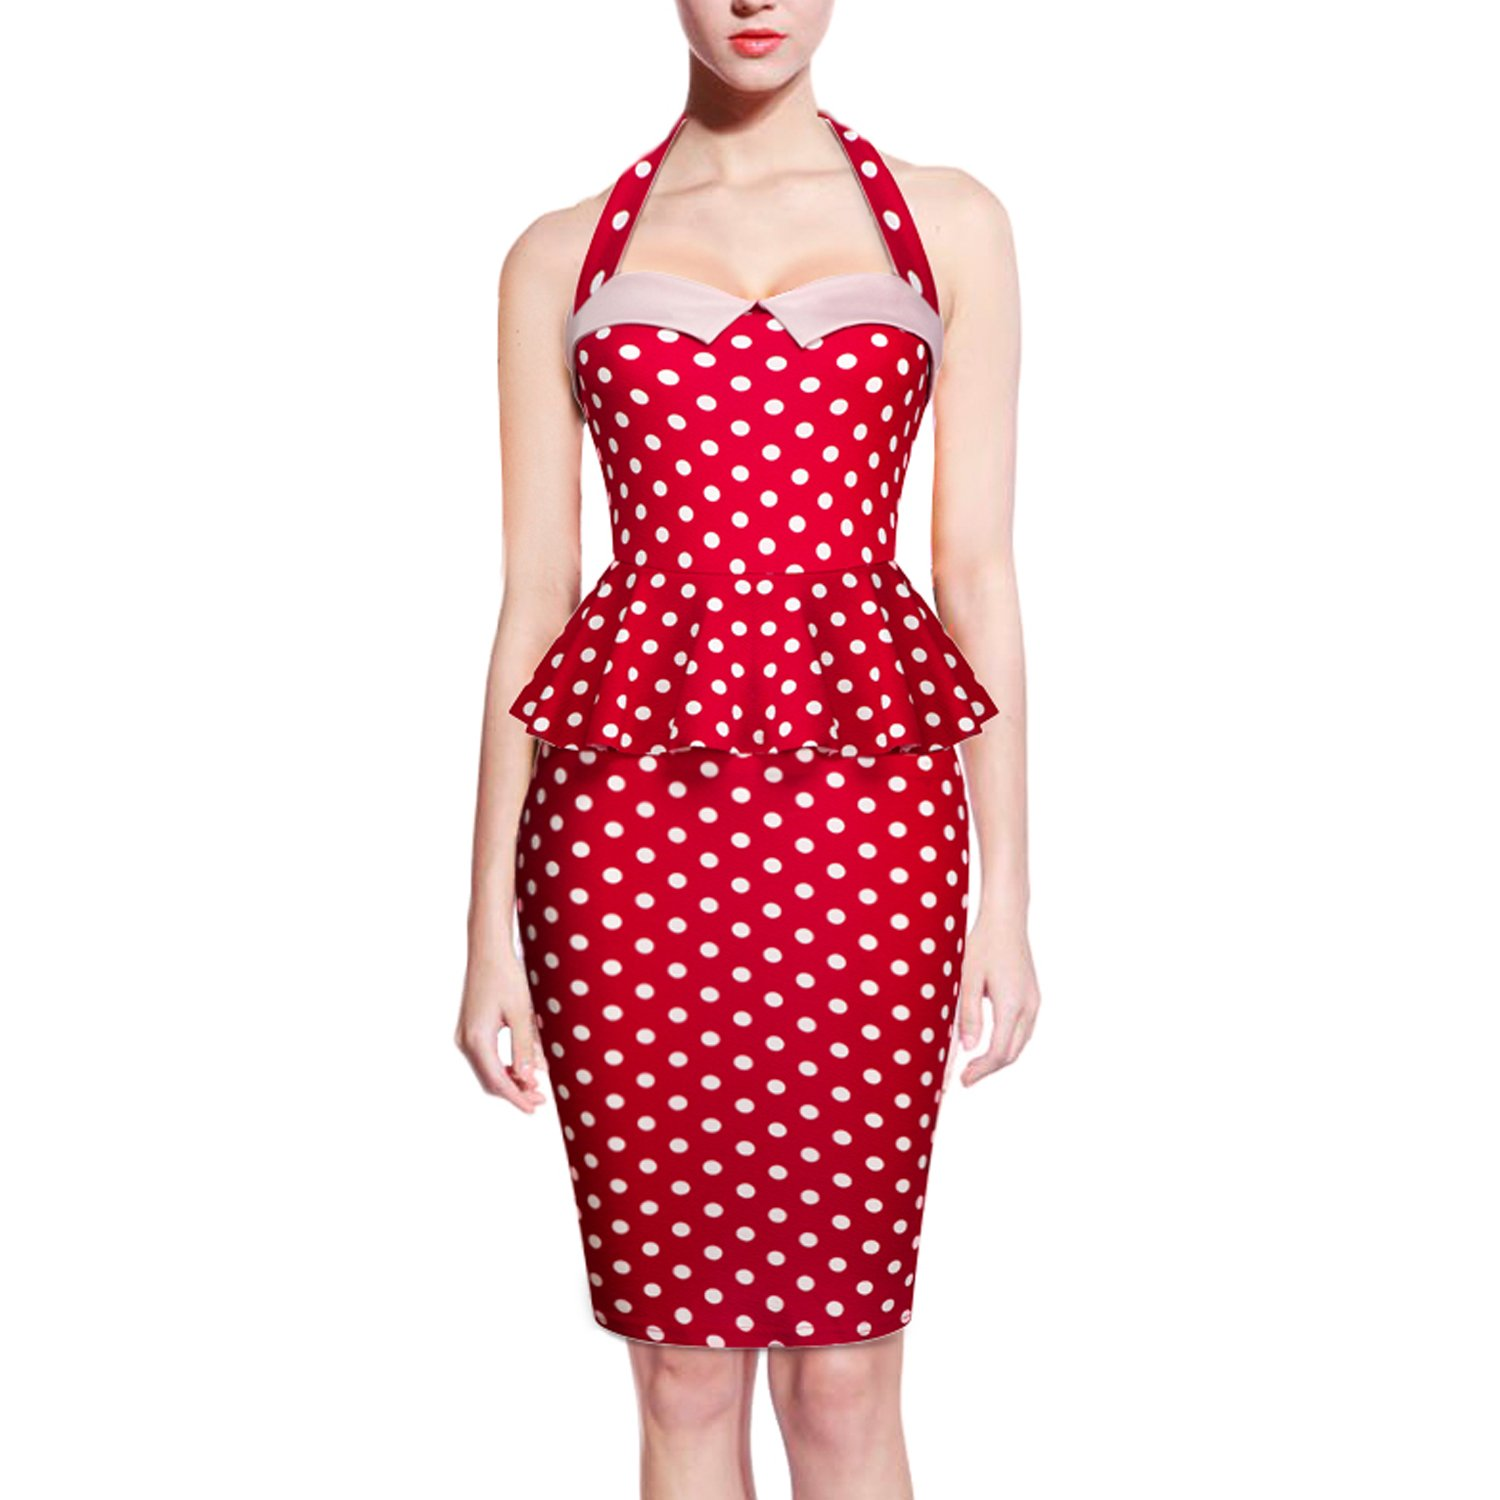 Pinup Fashion Vintage 1950s Rockabilly Polka Dots Retro Bodycon Cocktail Dress Red